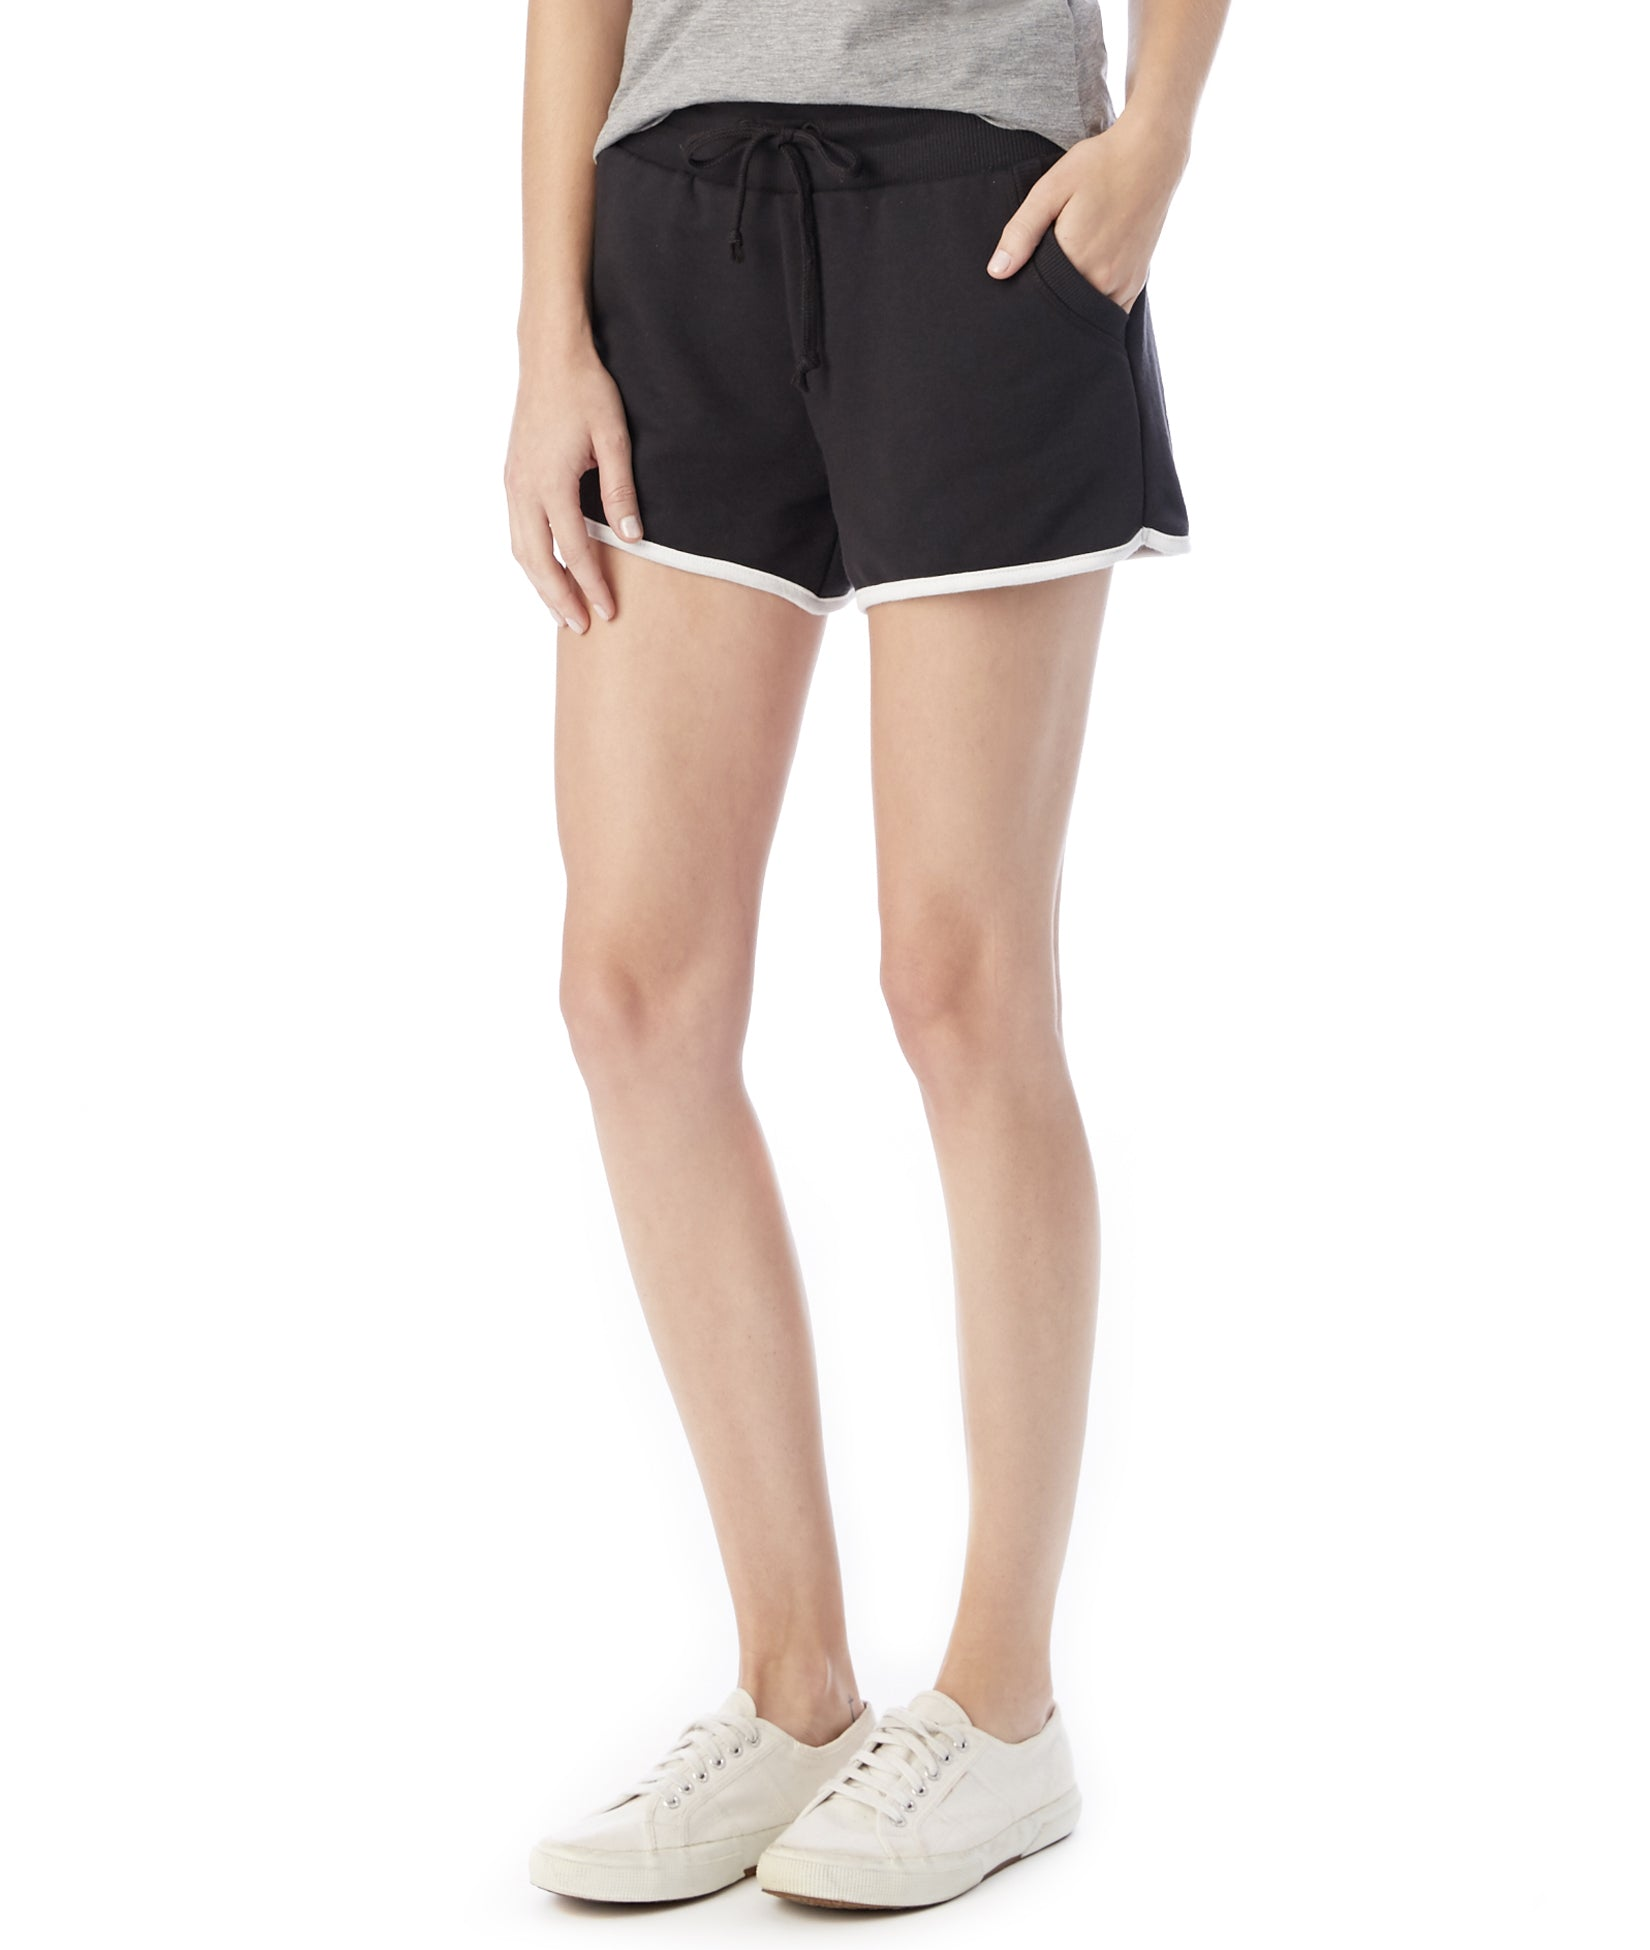 Women's Black French-Terry Classic Drawstring Shorts